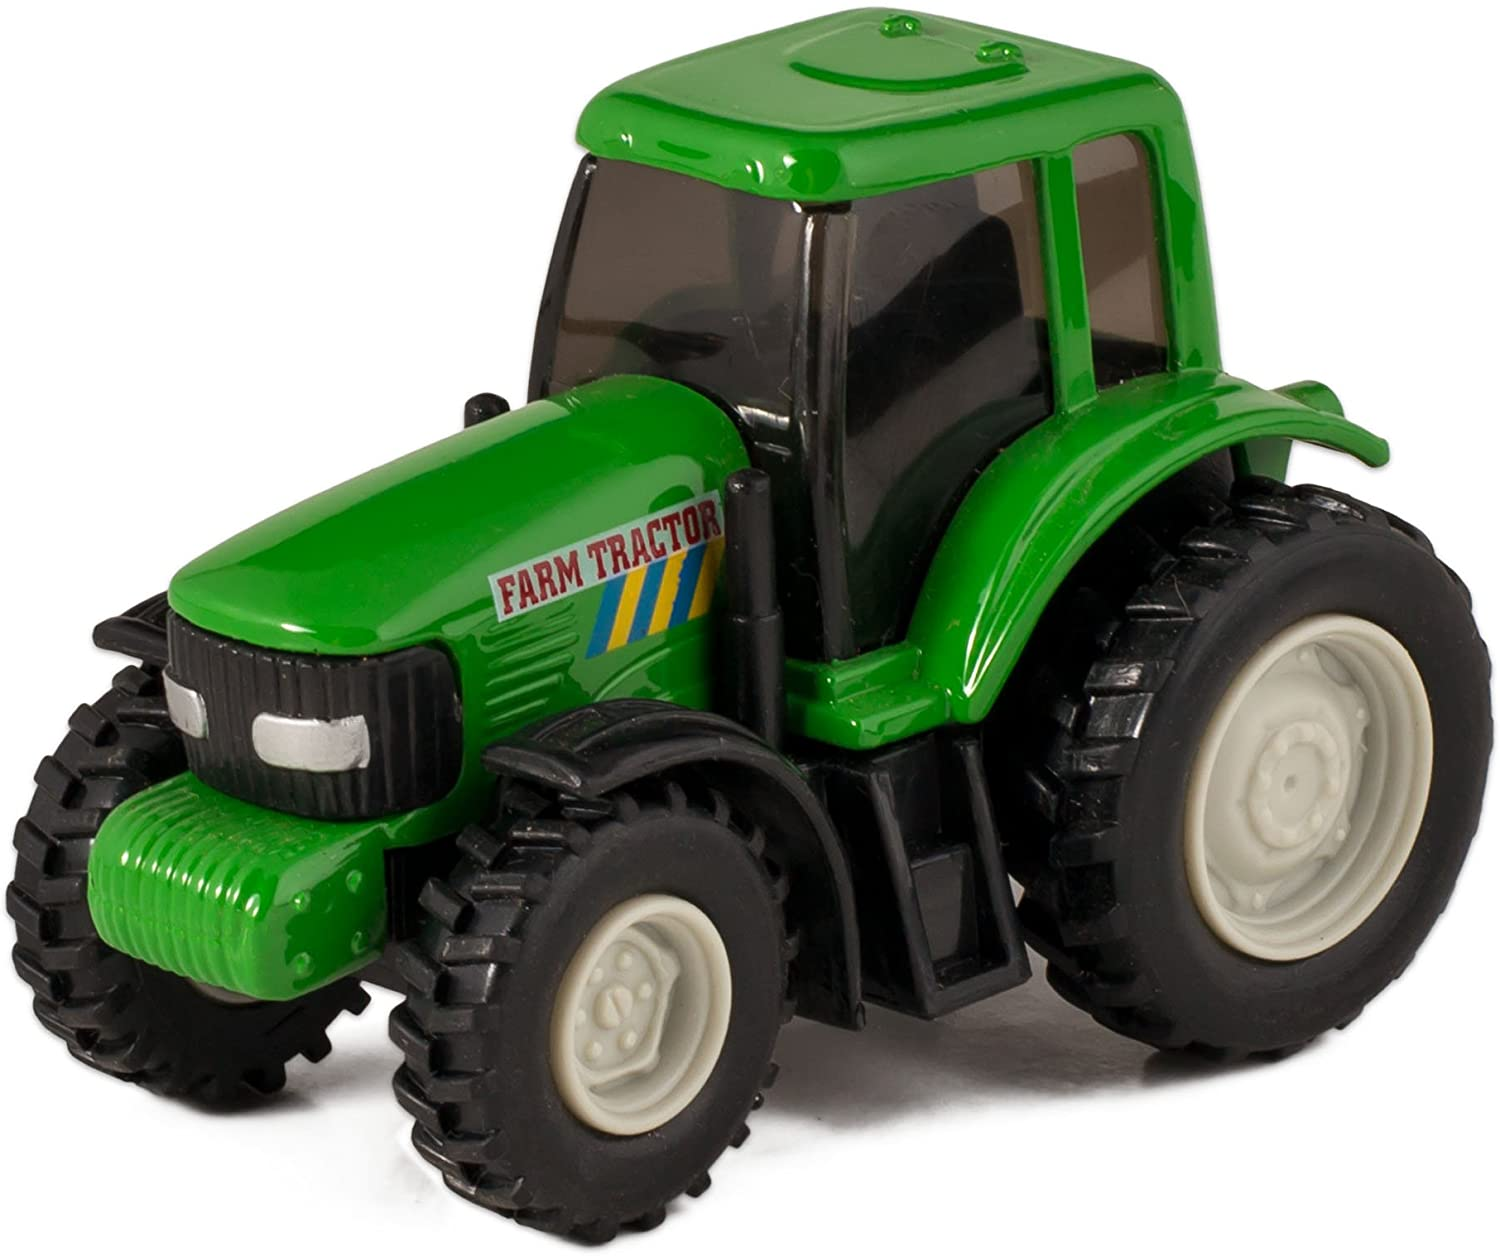 Green Die Cast Metal Farm Tractor Toy with Pull Back Action by Master Toy